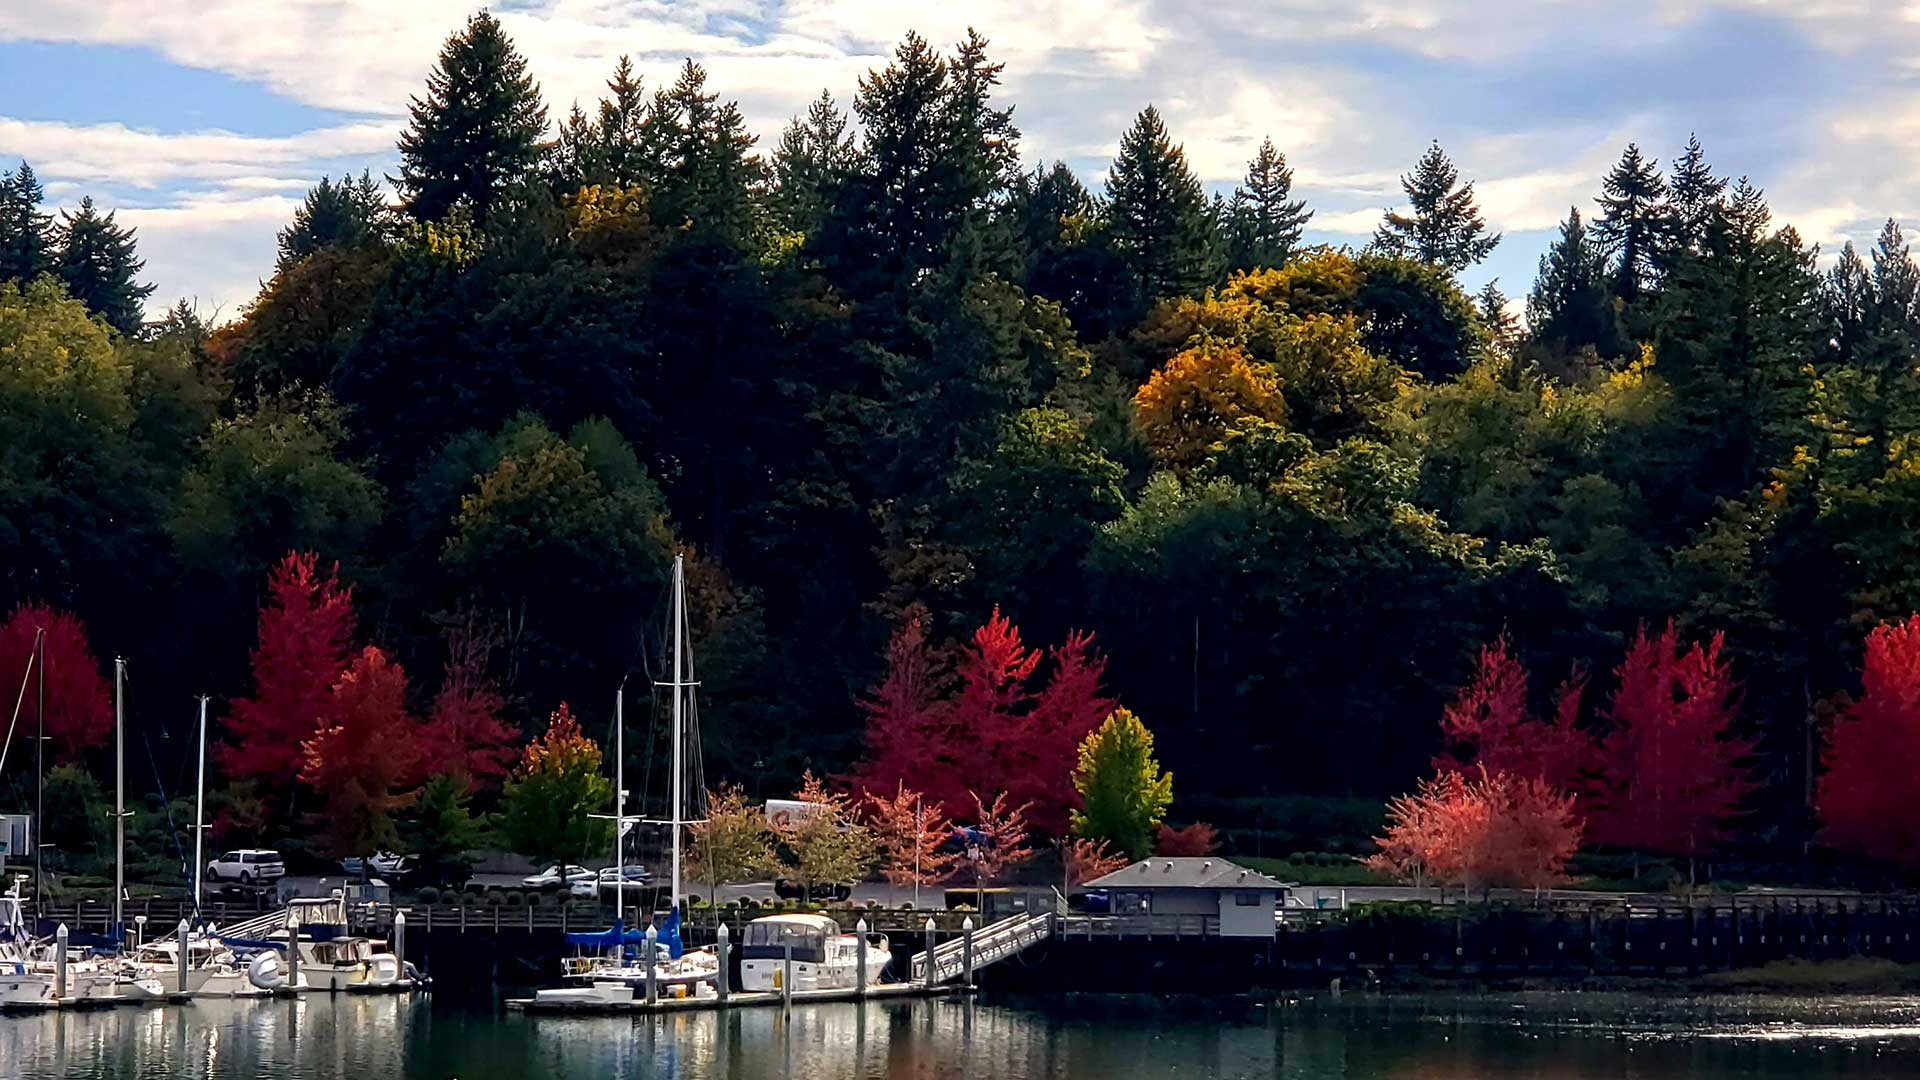 Harbor-Boat-Fall-Leaves